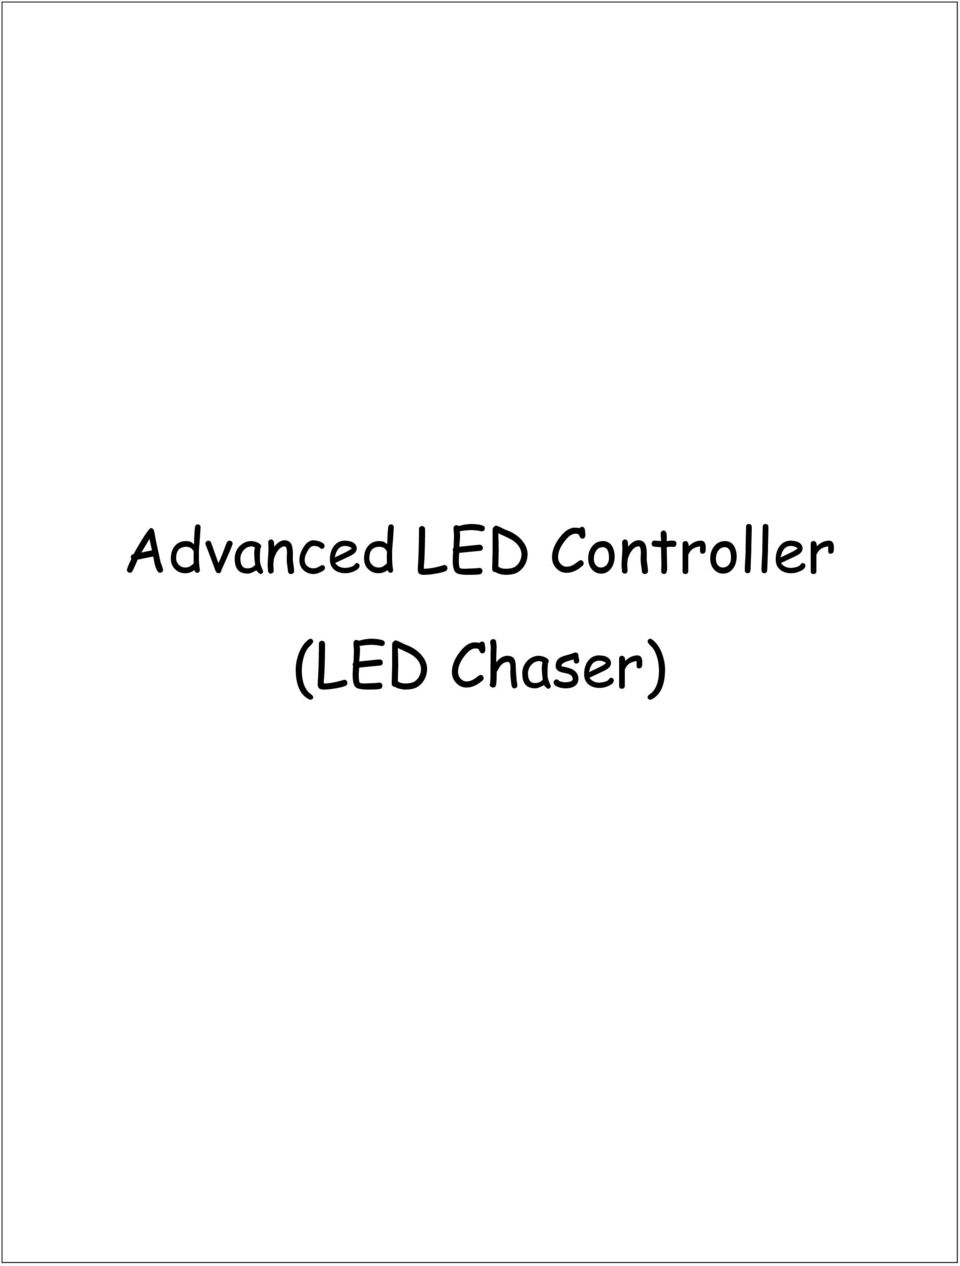 Advanced Led Controller Chaser Pdf Circuit Need Help Electronics Forum Circuits Projects Also Known As Is Microcontroller Based Designed To Produce Various Visual Light Effects By Controlling The